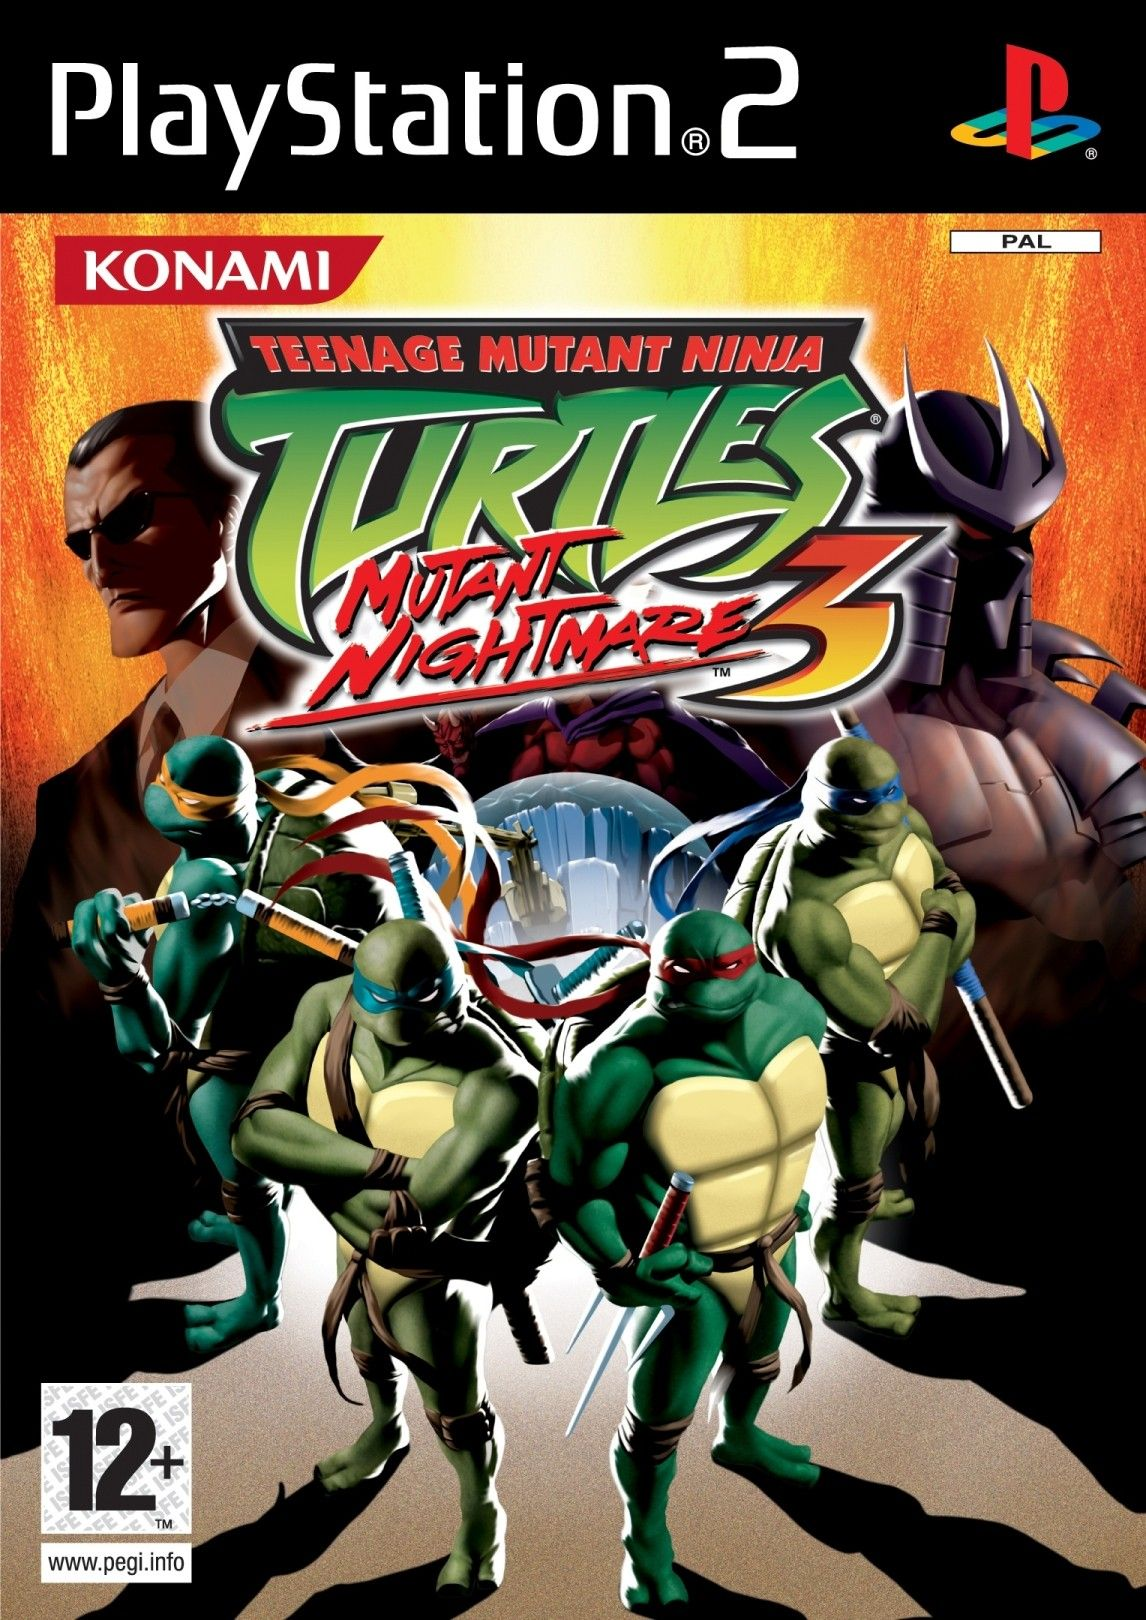 Teenage_Mutant_Ninja_Turtles_3_-_Mutant_Nightmare-Frontal-PS2.jpg